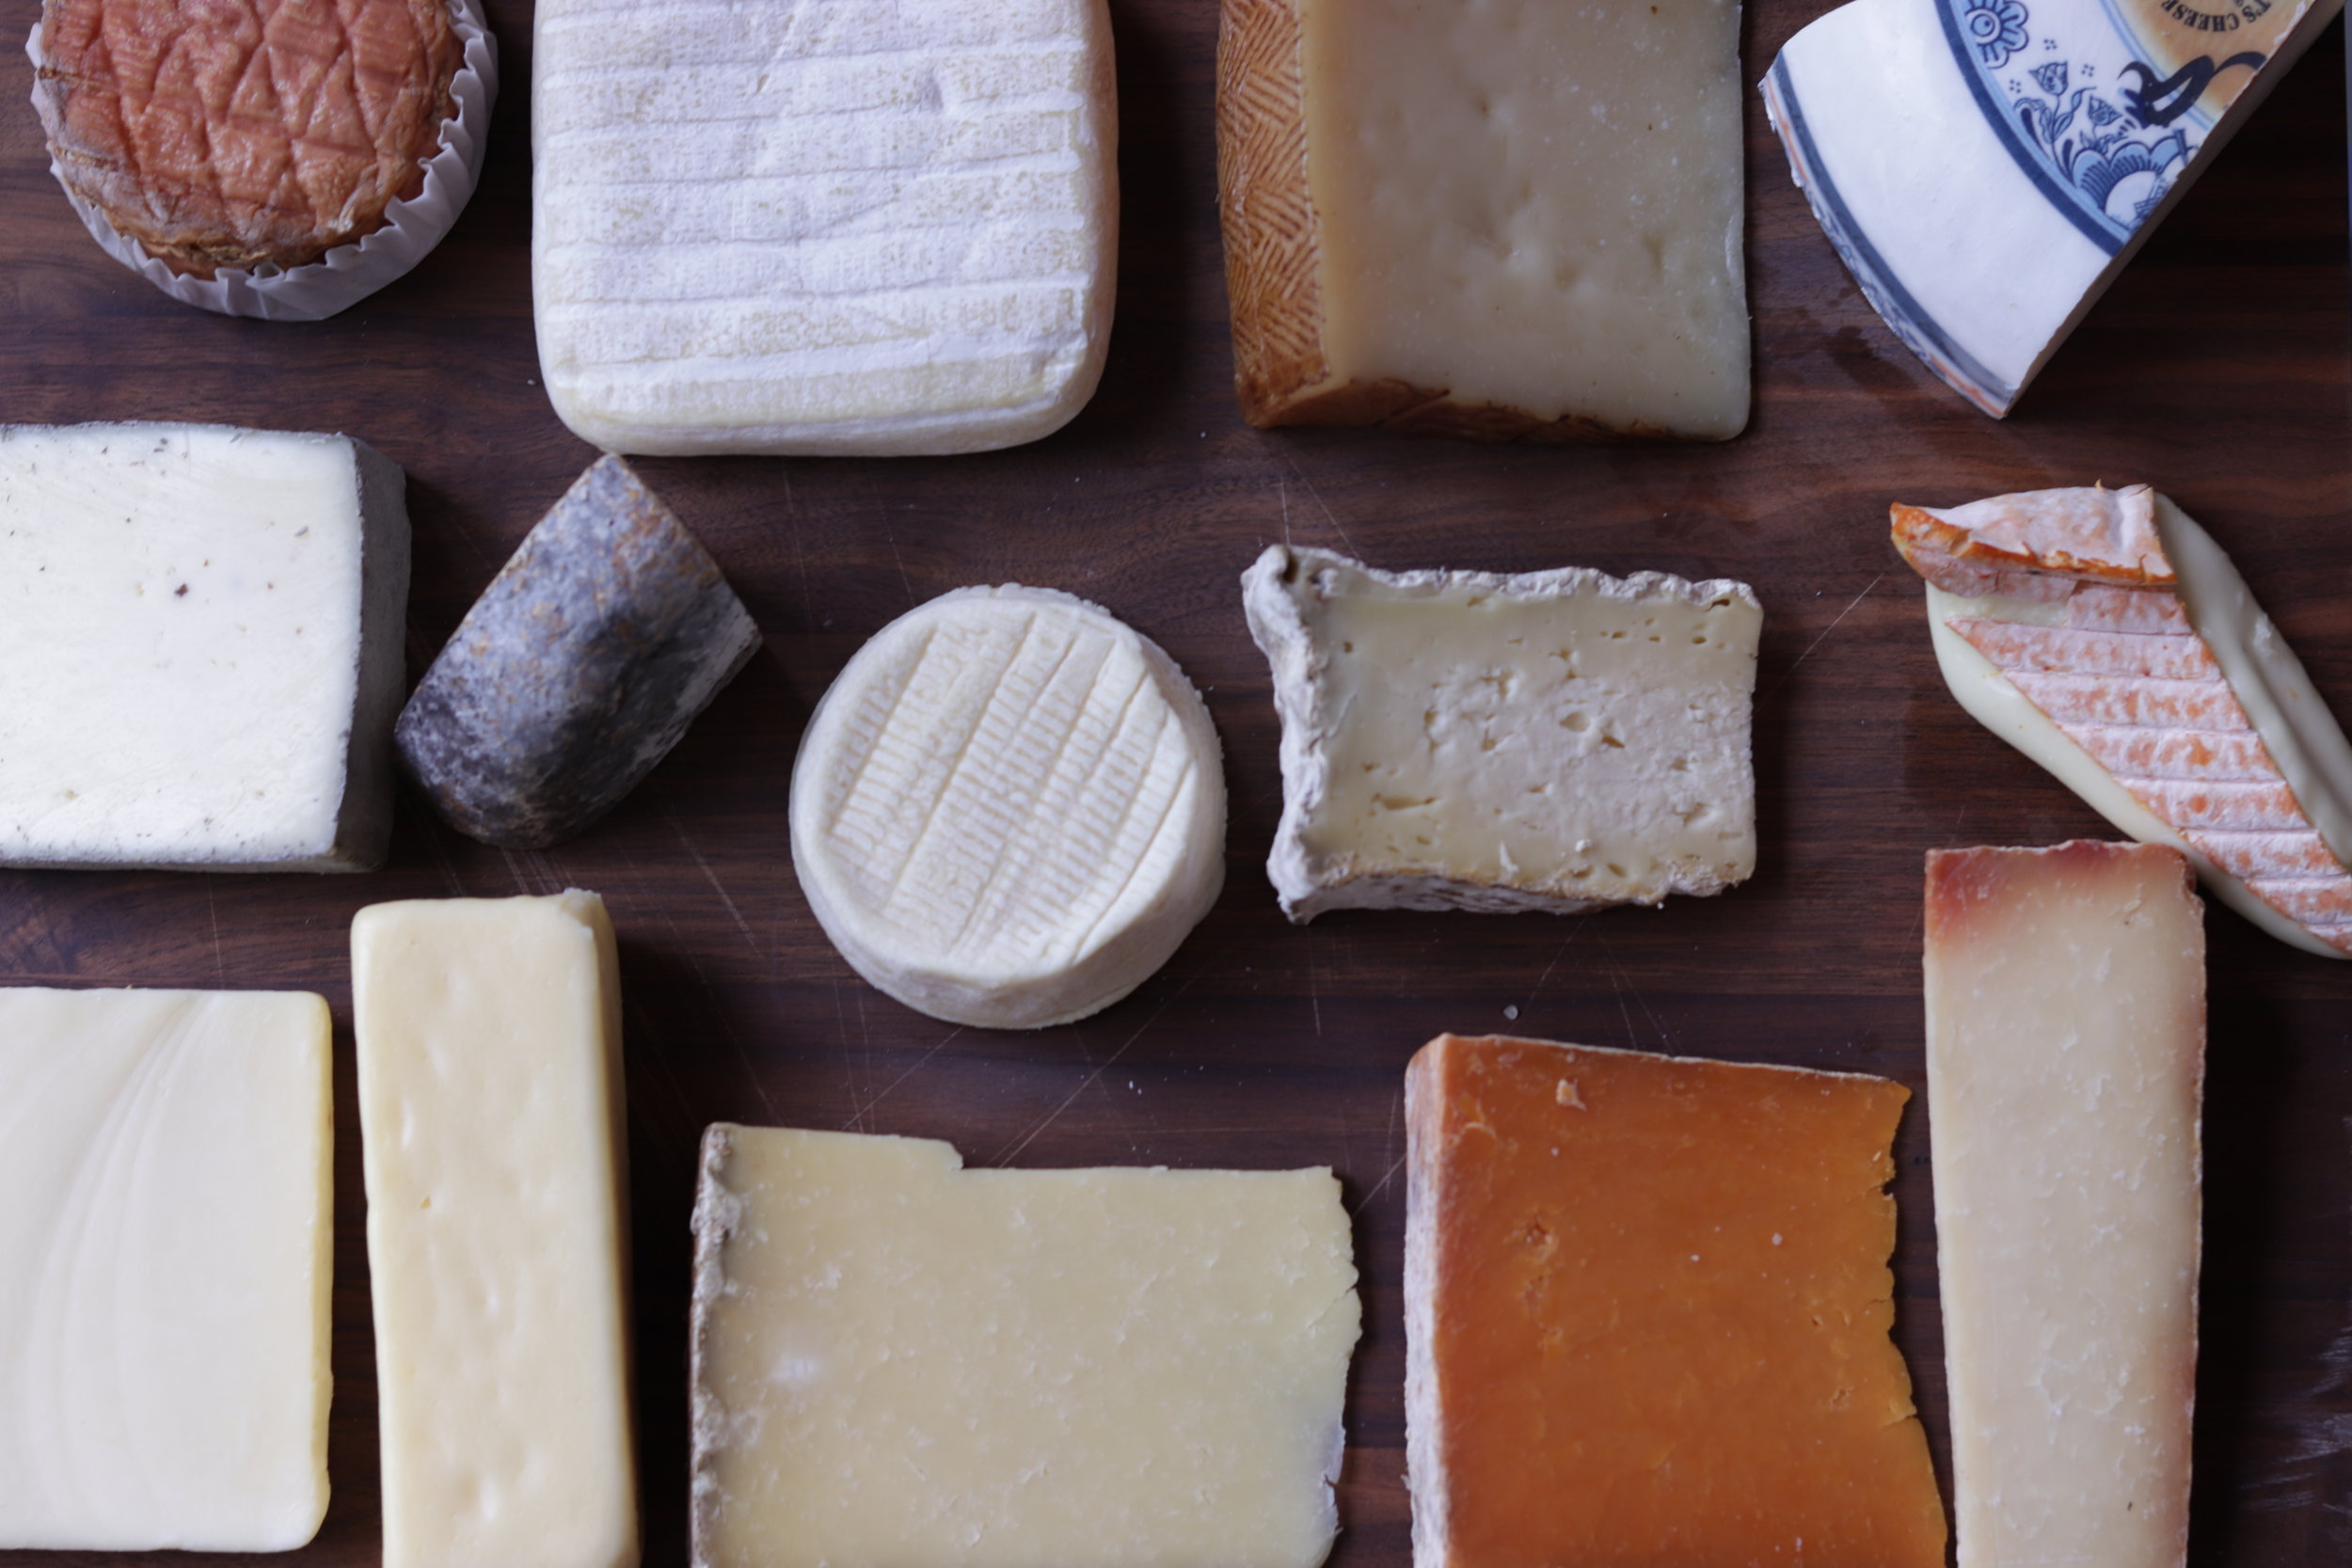 The people's cheese -